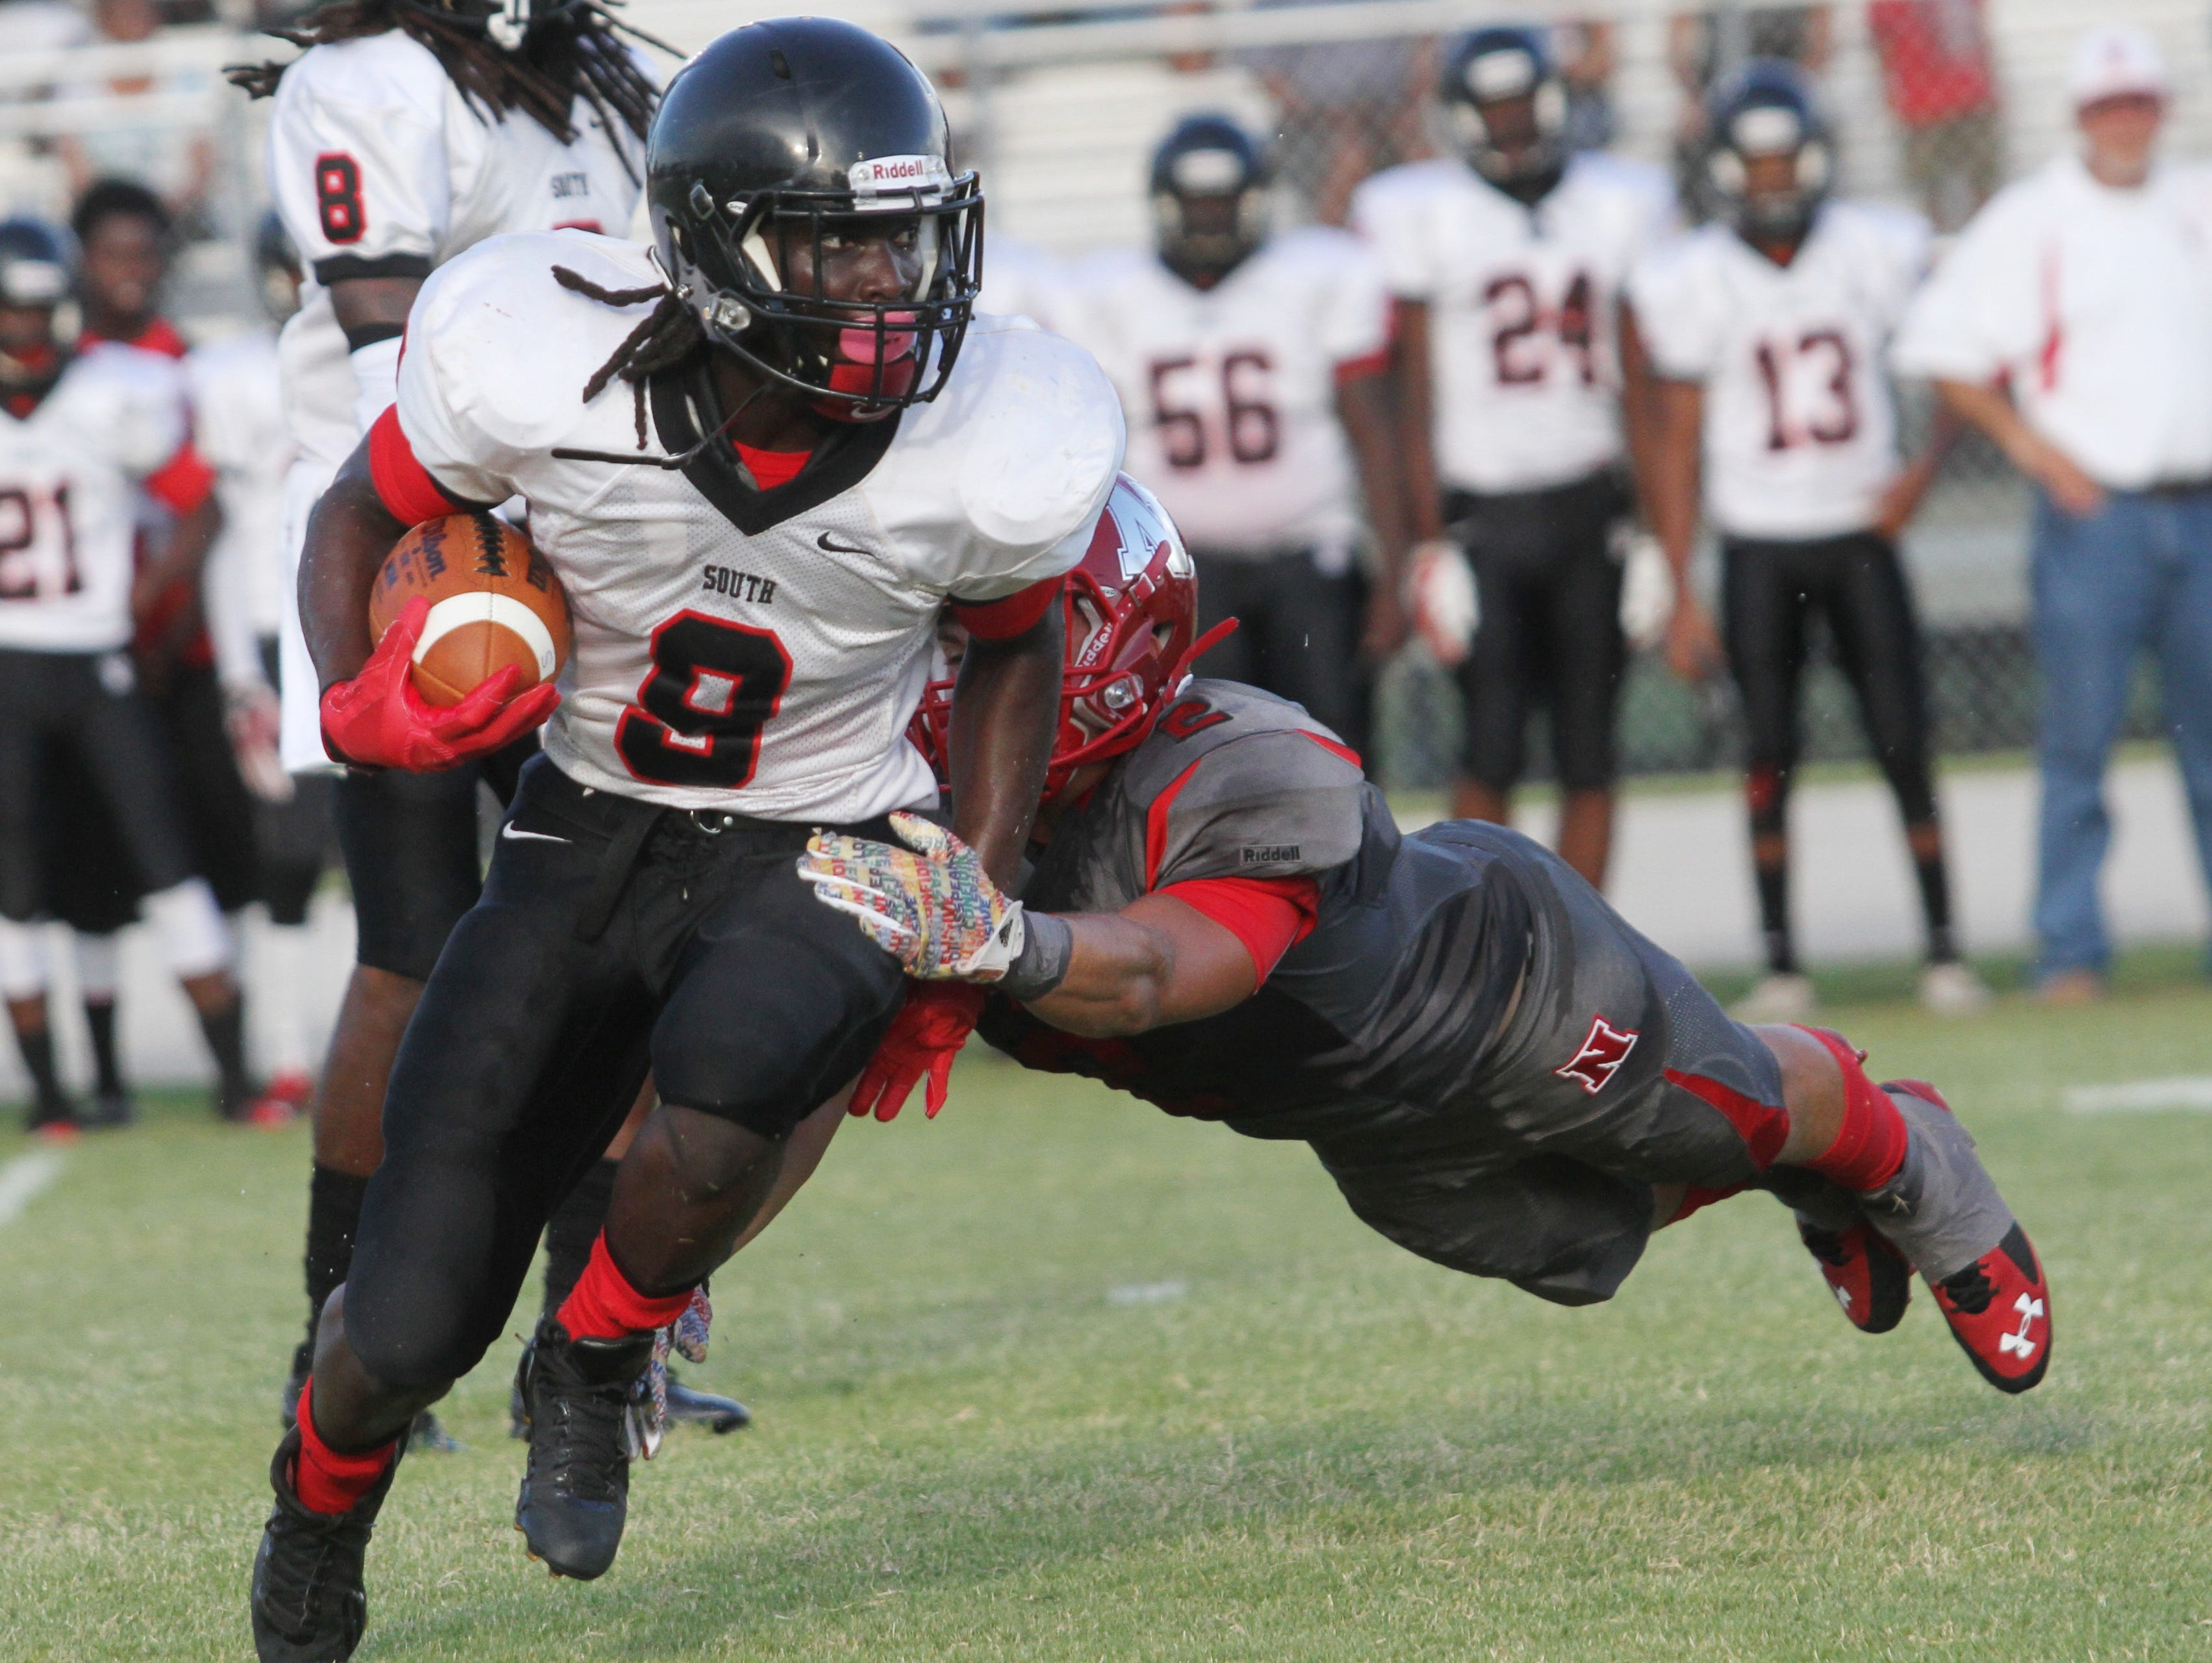 South Fort Myers' E'Quan Dorris attempts to shake off North Fort Myers defender Zachary St. Amand during a preseason game at North Fort Myers High School.